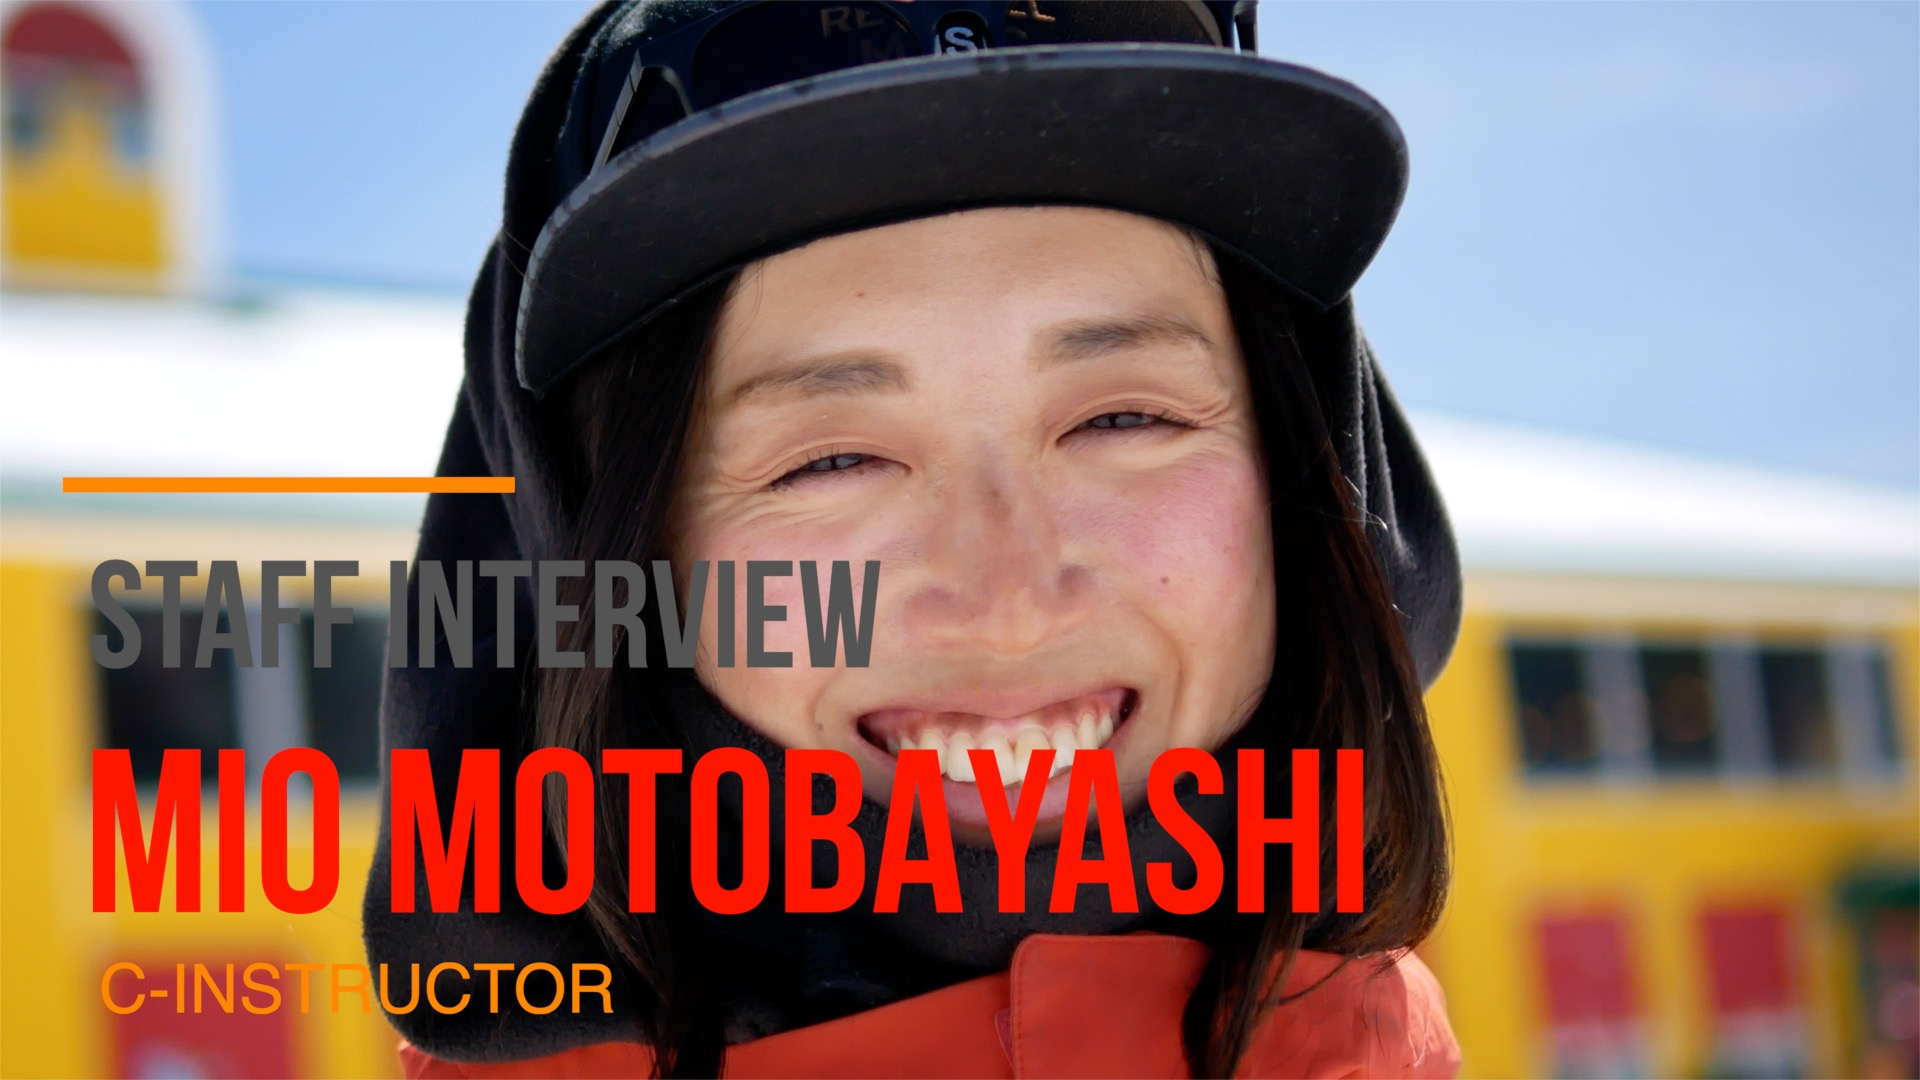 STAFF INTERVIEW [MIO MOTOBAYASHI]